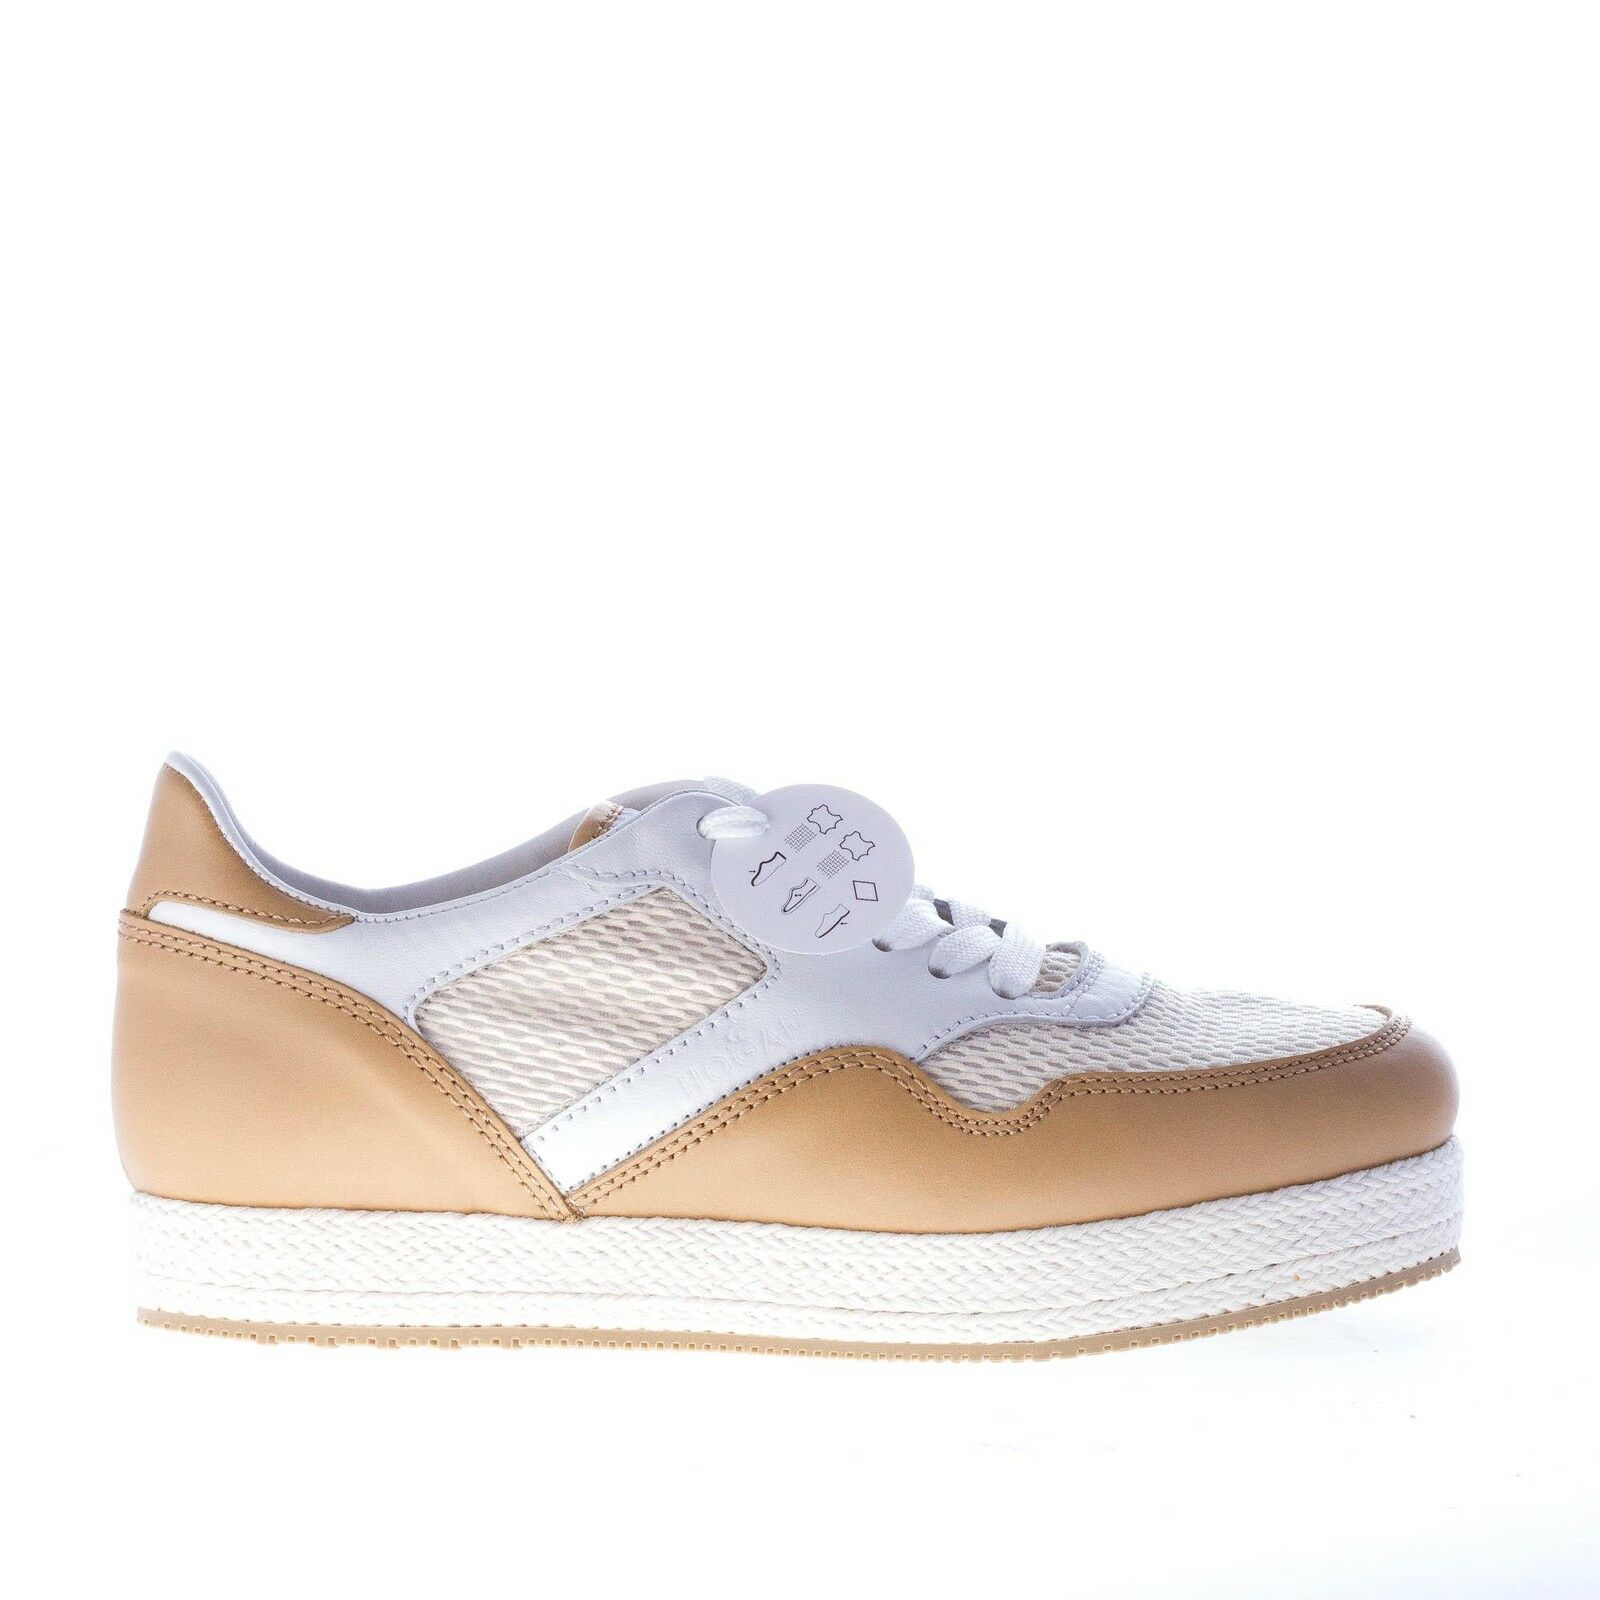 HOGAN women shoes H 268 beige, white and natural lace up sneaker with rope trim